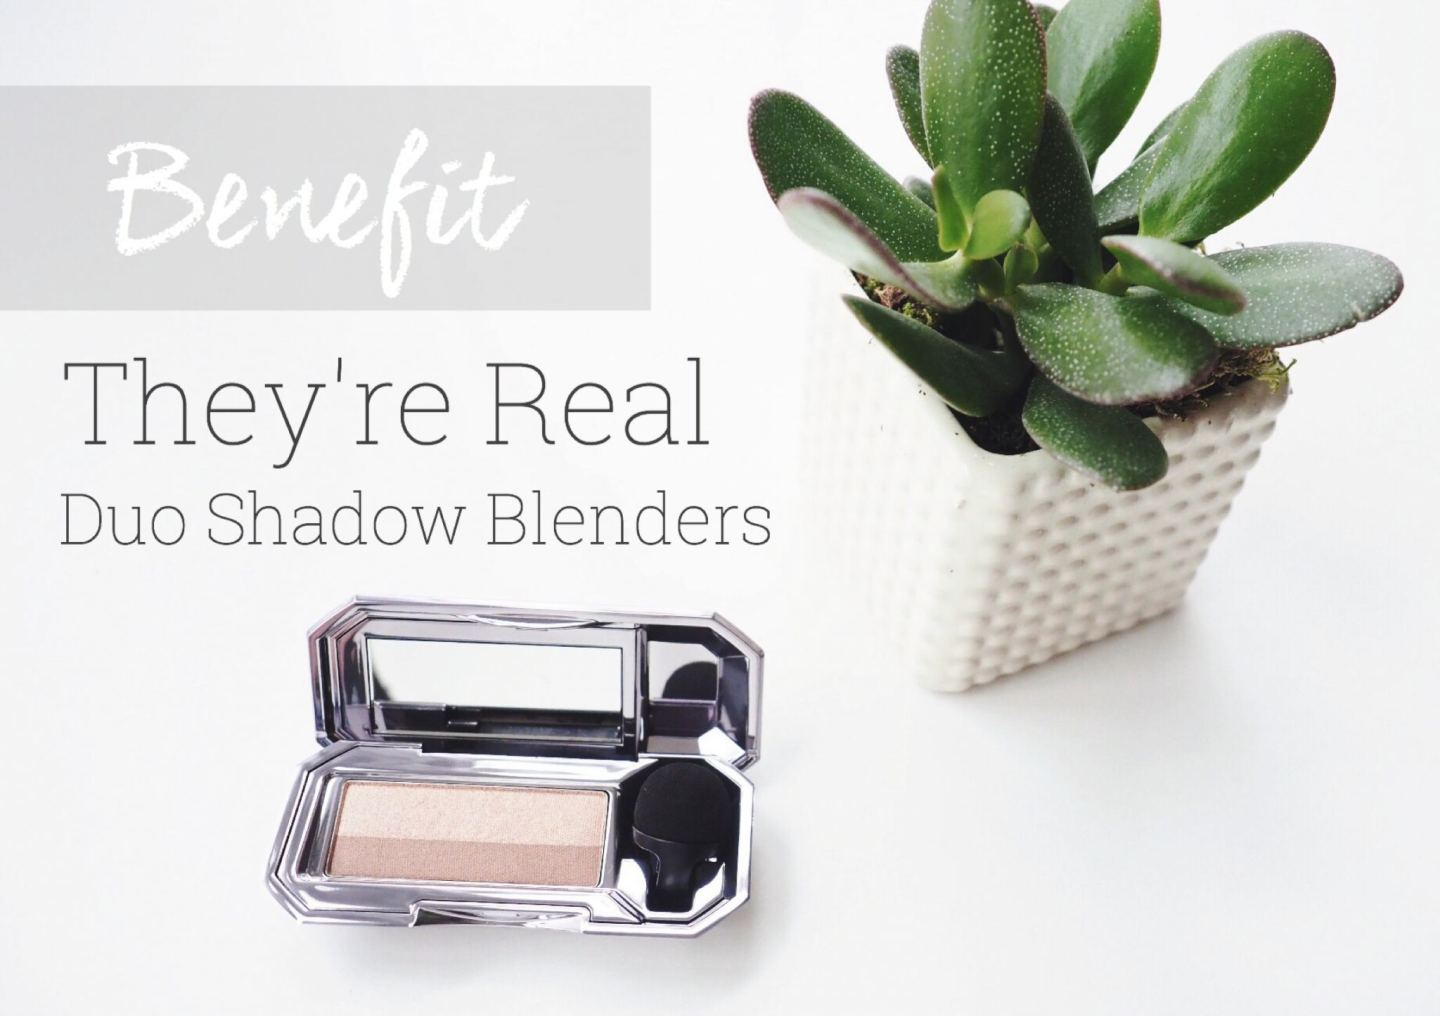 Benefit They're Real Duo Shadow Blenders | review